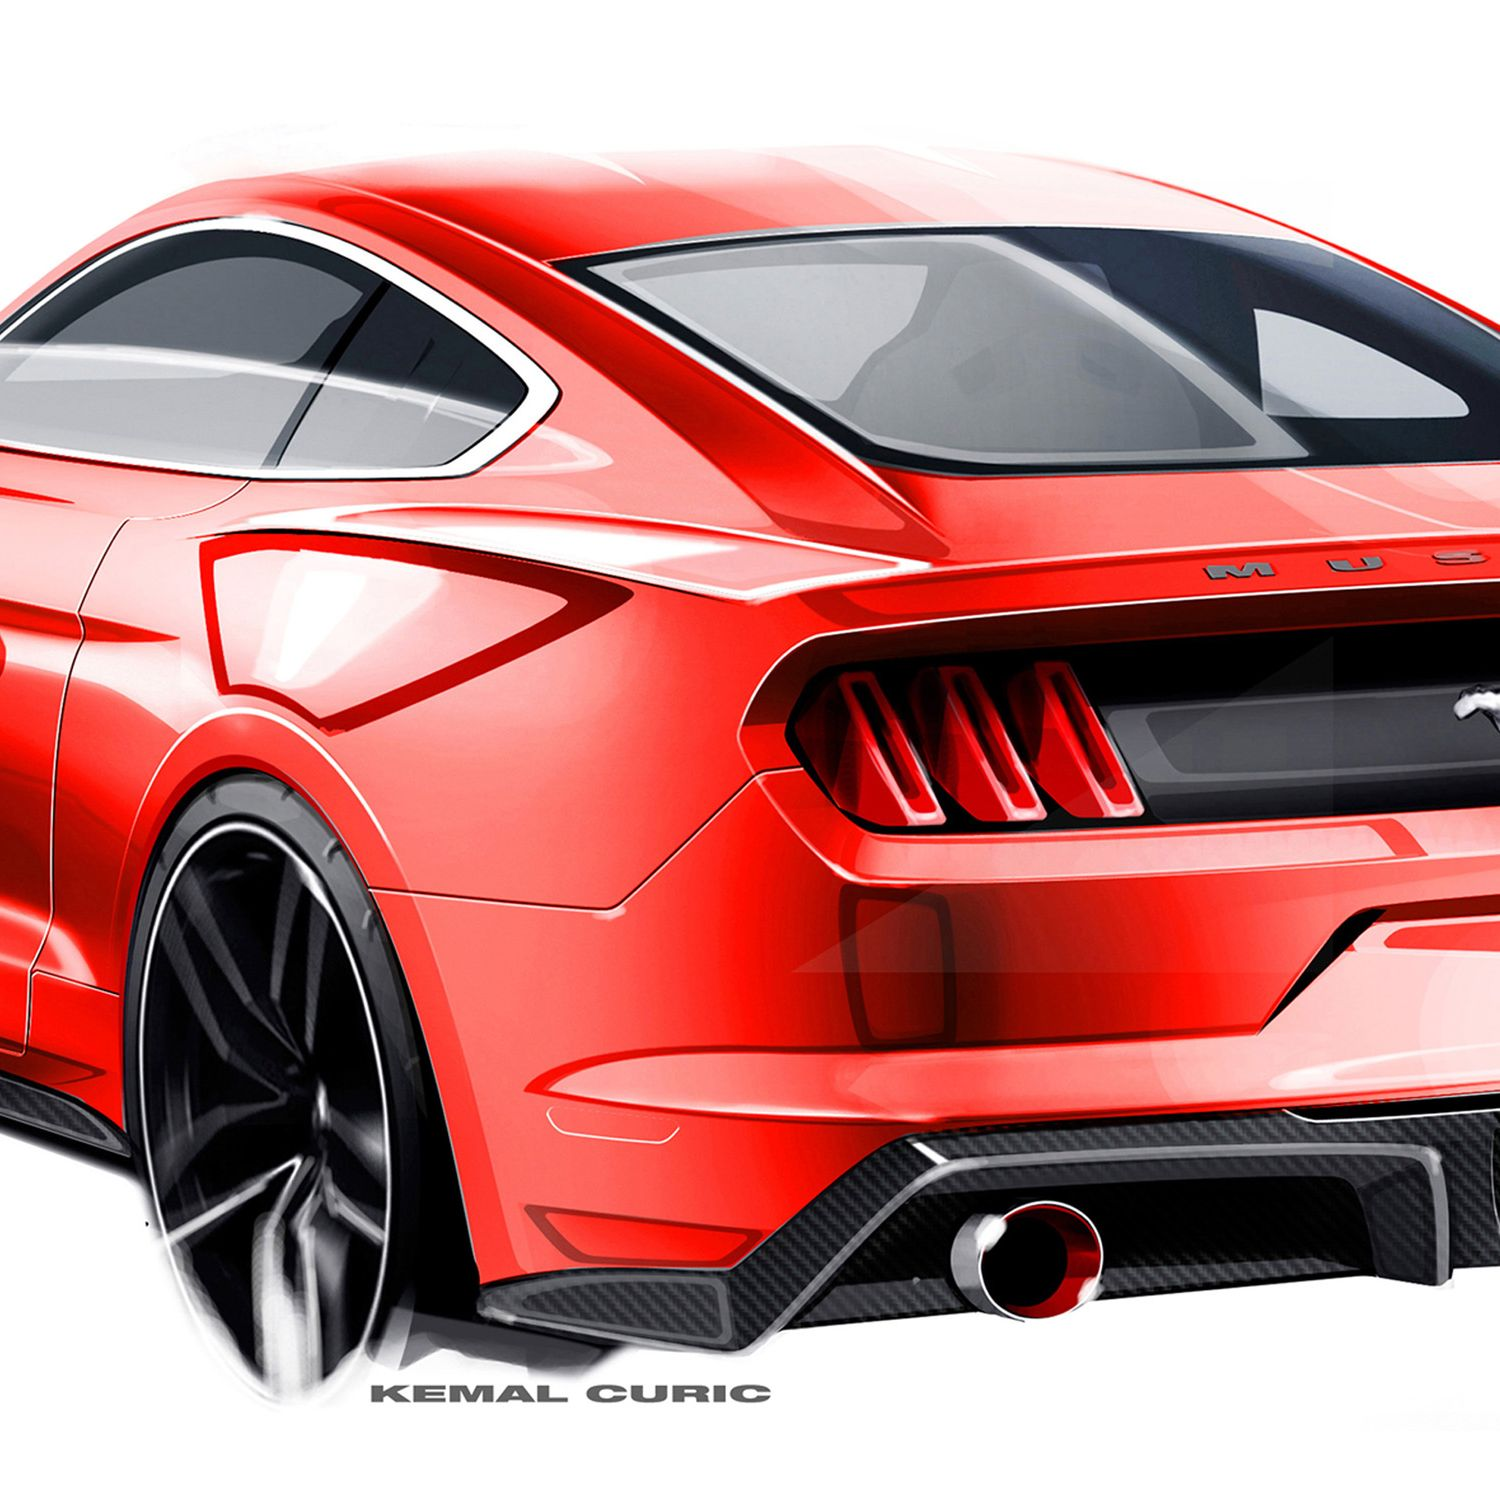 Once the basic design is complete, many refinements occur.Some are to improve appearance, while others are made to satisfy safety or manufacturing requirements.Initial changes may be measured in inches, while final changes can be fractions of an inch. The result in this case is the 2015 Mustang – the 50th anniversary edition of a Ford icon. &#xA&#x3B;